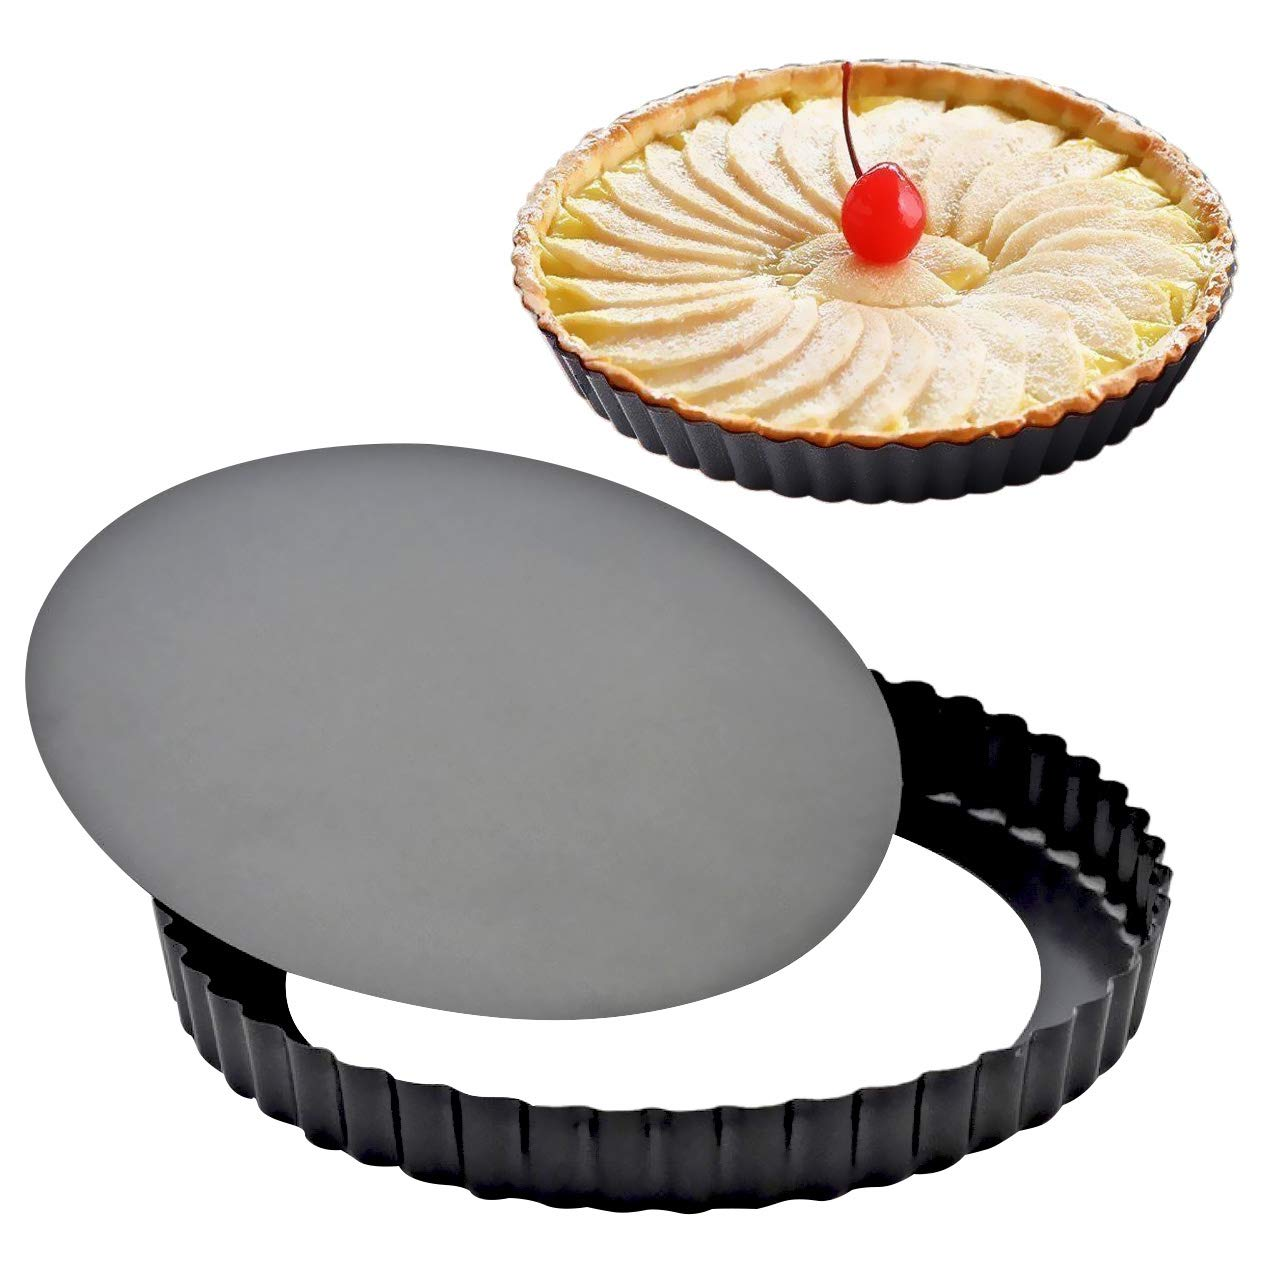 2 Pack Attmu 9 Inches Non-Stick Removable Loose Bottom Quiche Tart Pan, Tart Pie Pan, Round Tart Quiche Pan with Removable Base by Attmu